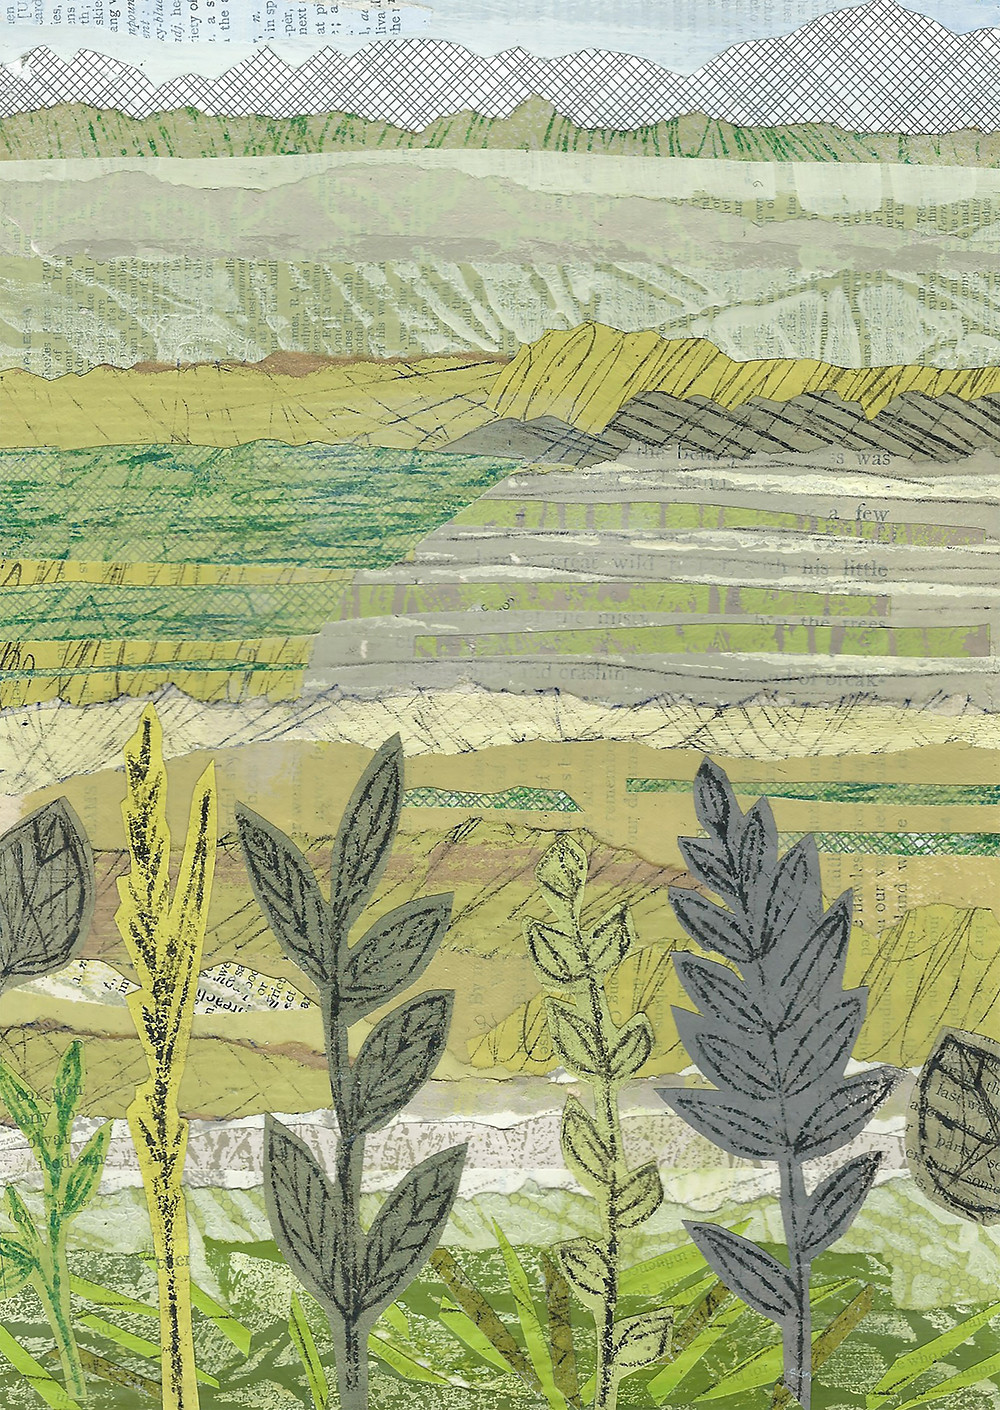 Hills & Hedges, a print by Sue Johnson